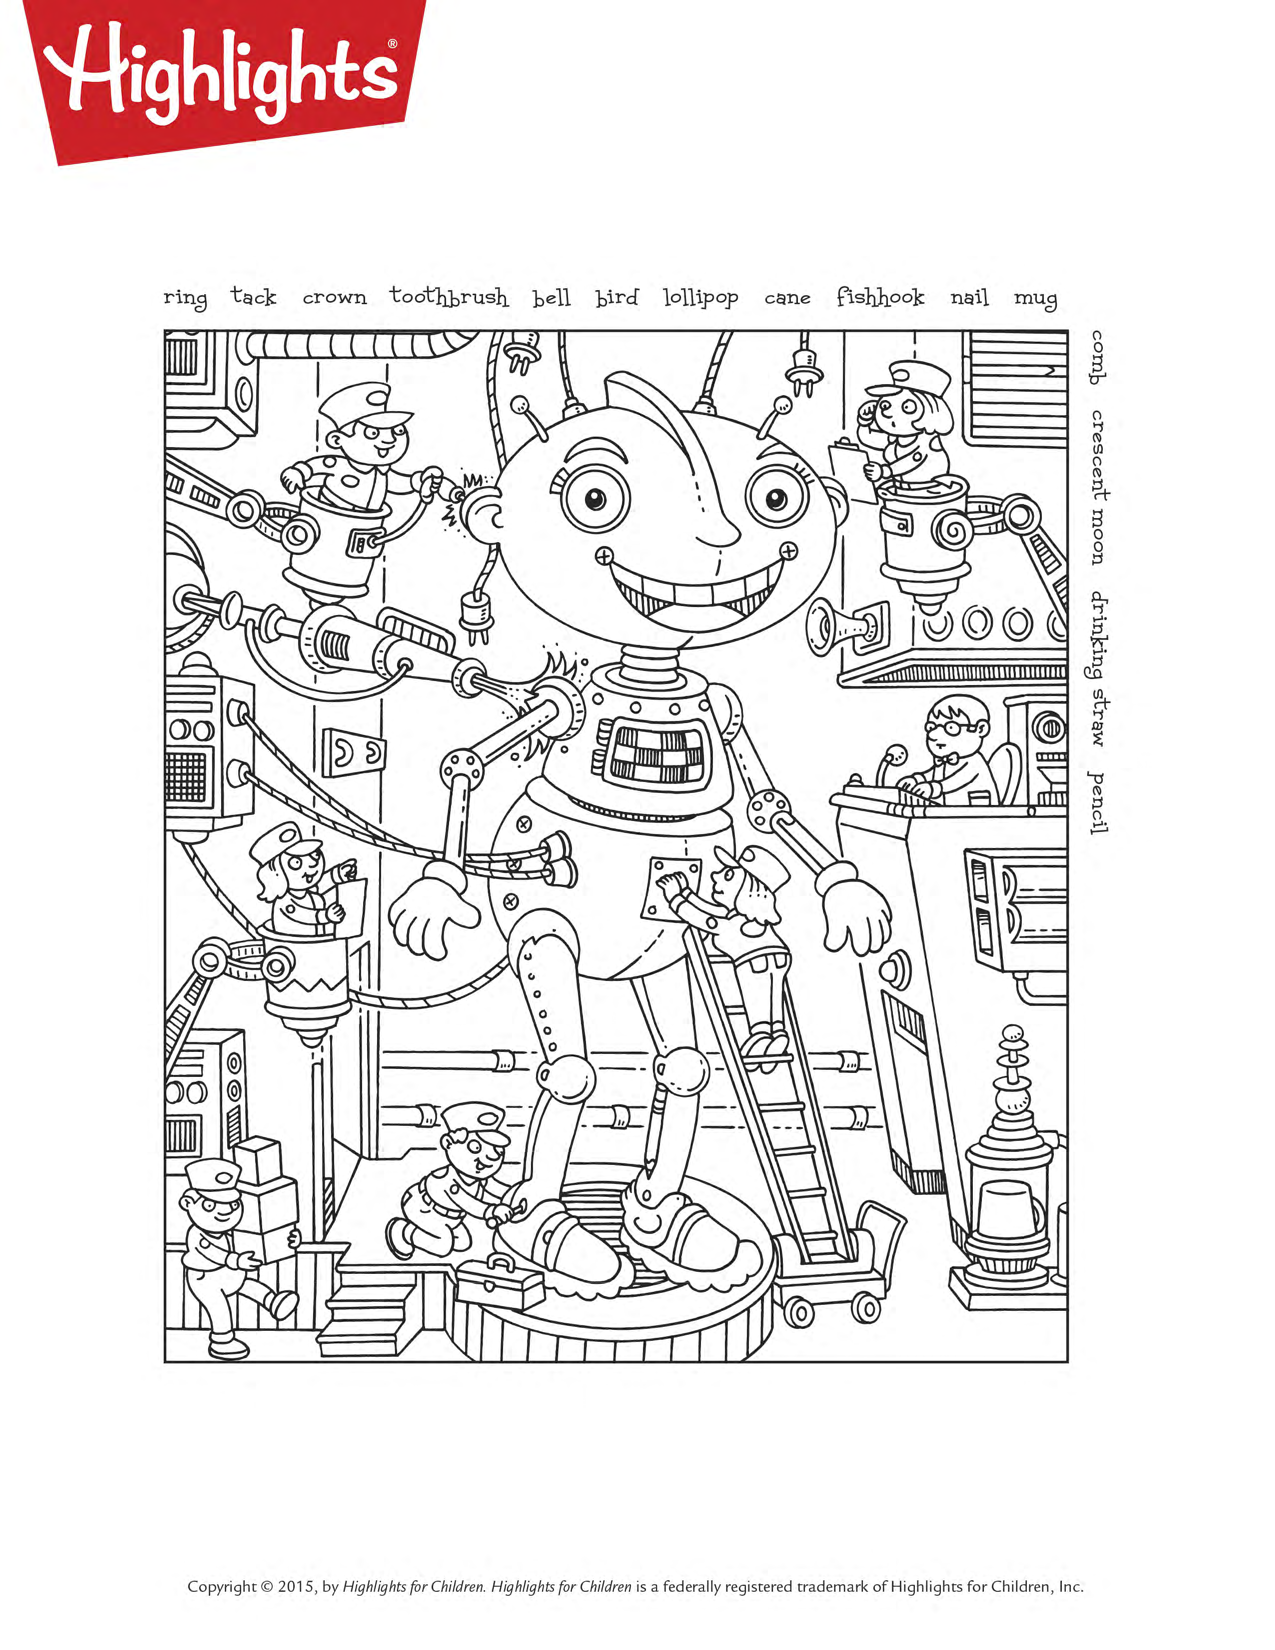 Chance coloring book samples - Want A Chance To Win A Copy Of Our Brand New Hidden Pictures Coloring Book For